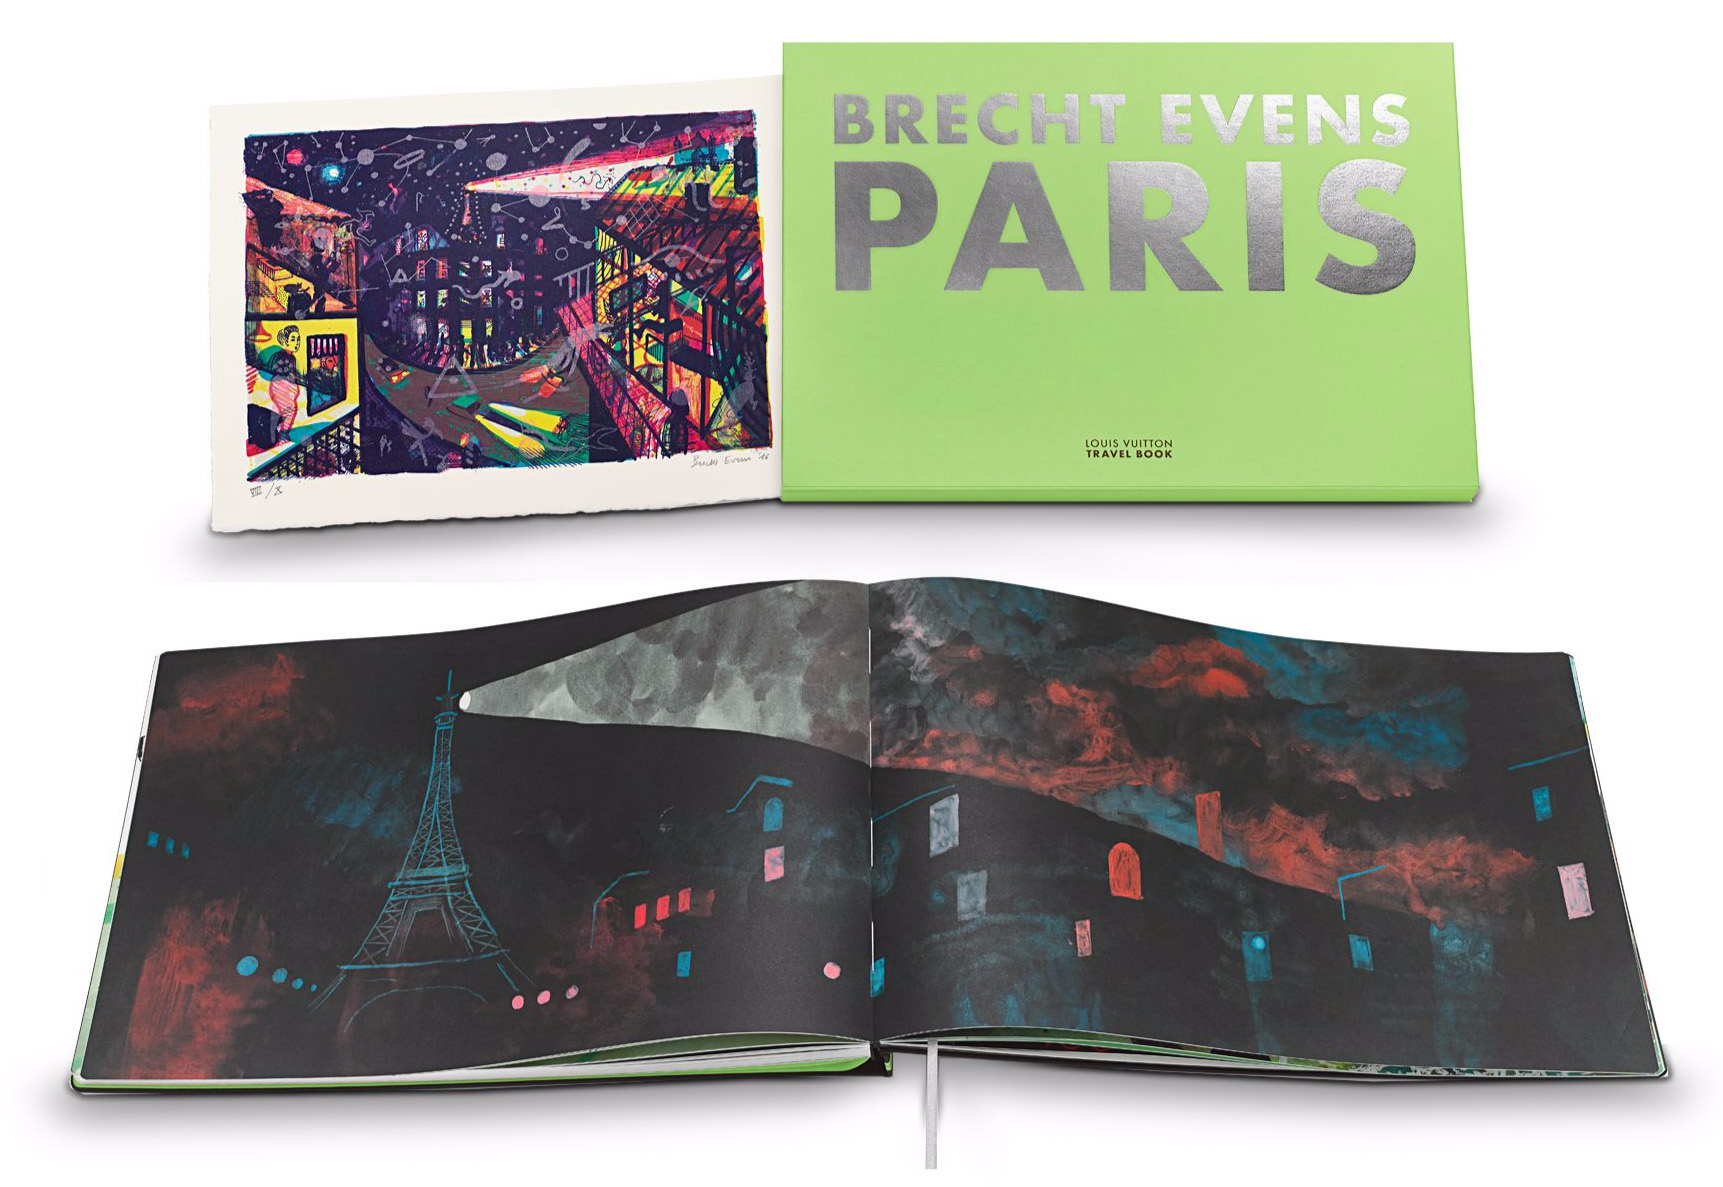 'Artist's Edition' of the Louis Vuitton Travel Book Paris, bound in leather with slipcase, 39 cm x 27 cm   contains an original lithograph, printed on Vélin de Rives paper by Atelier Michael Woolworth.  Limited edition of 30 copies  2500 €